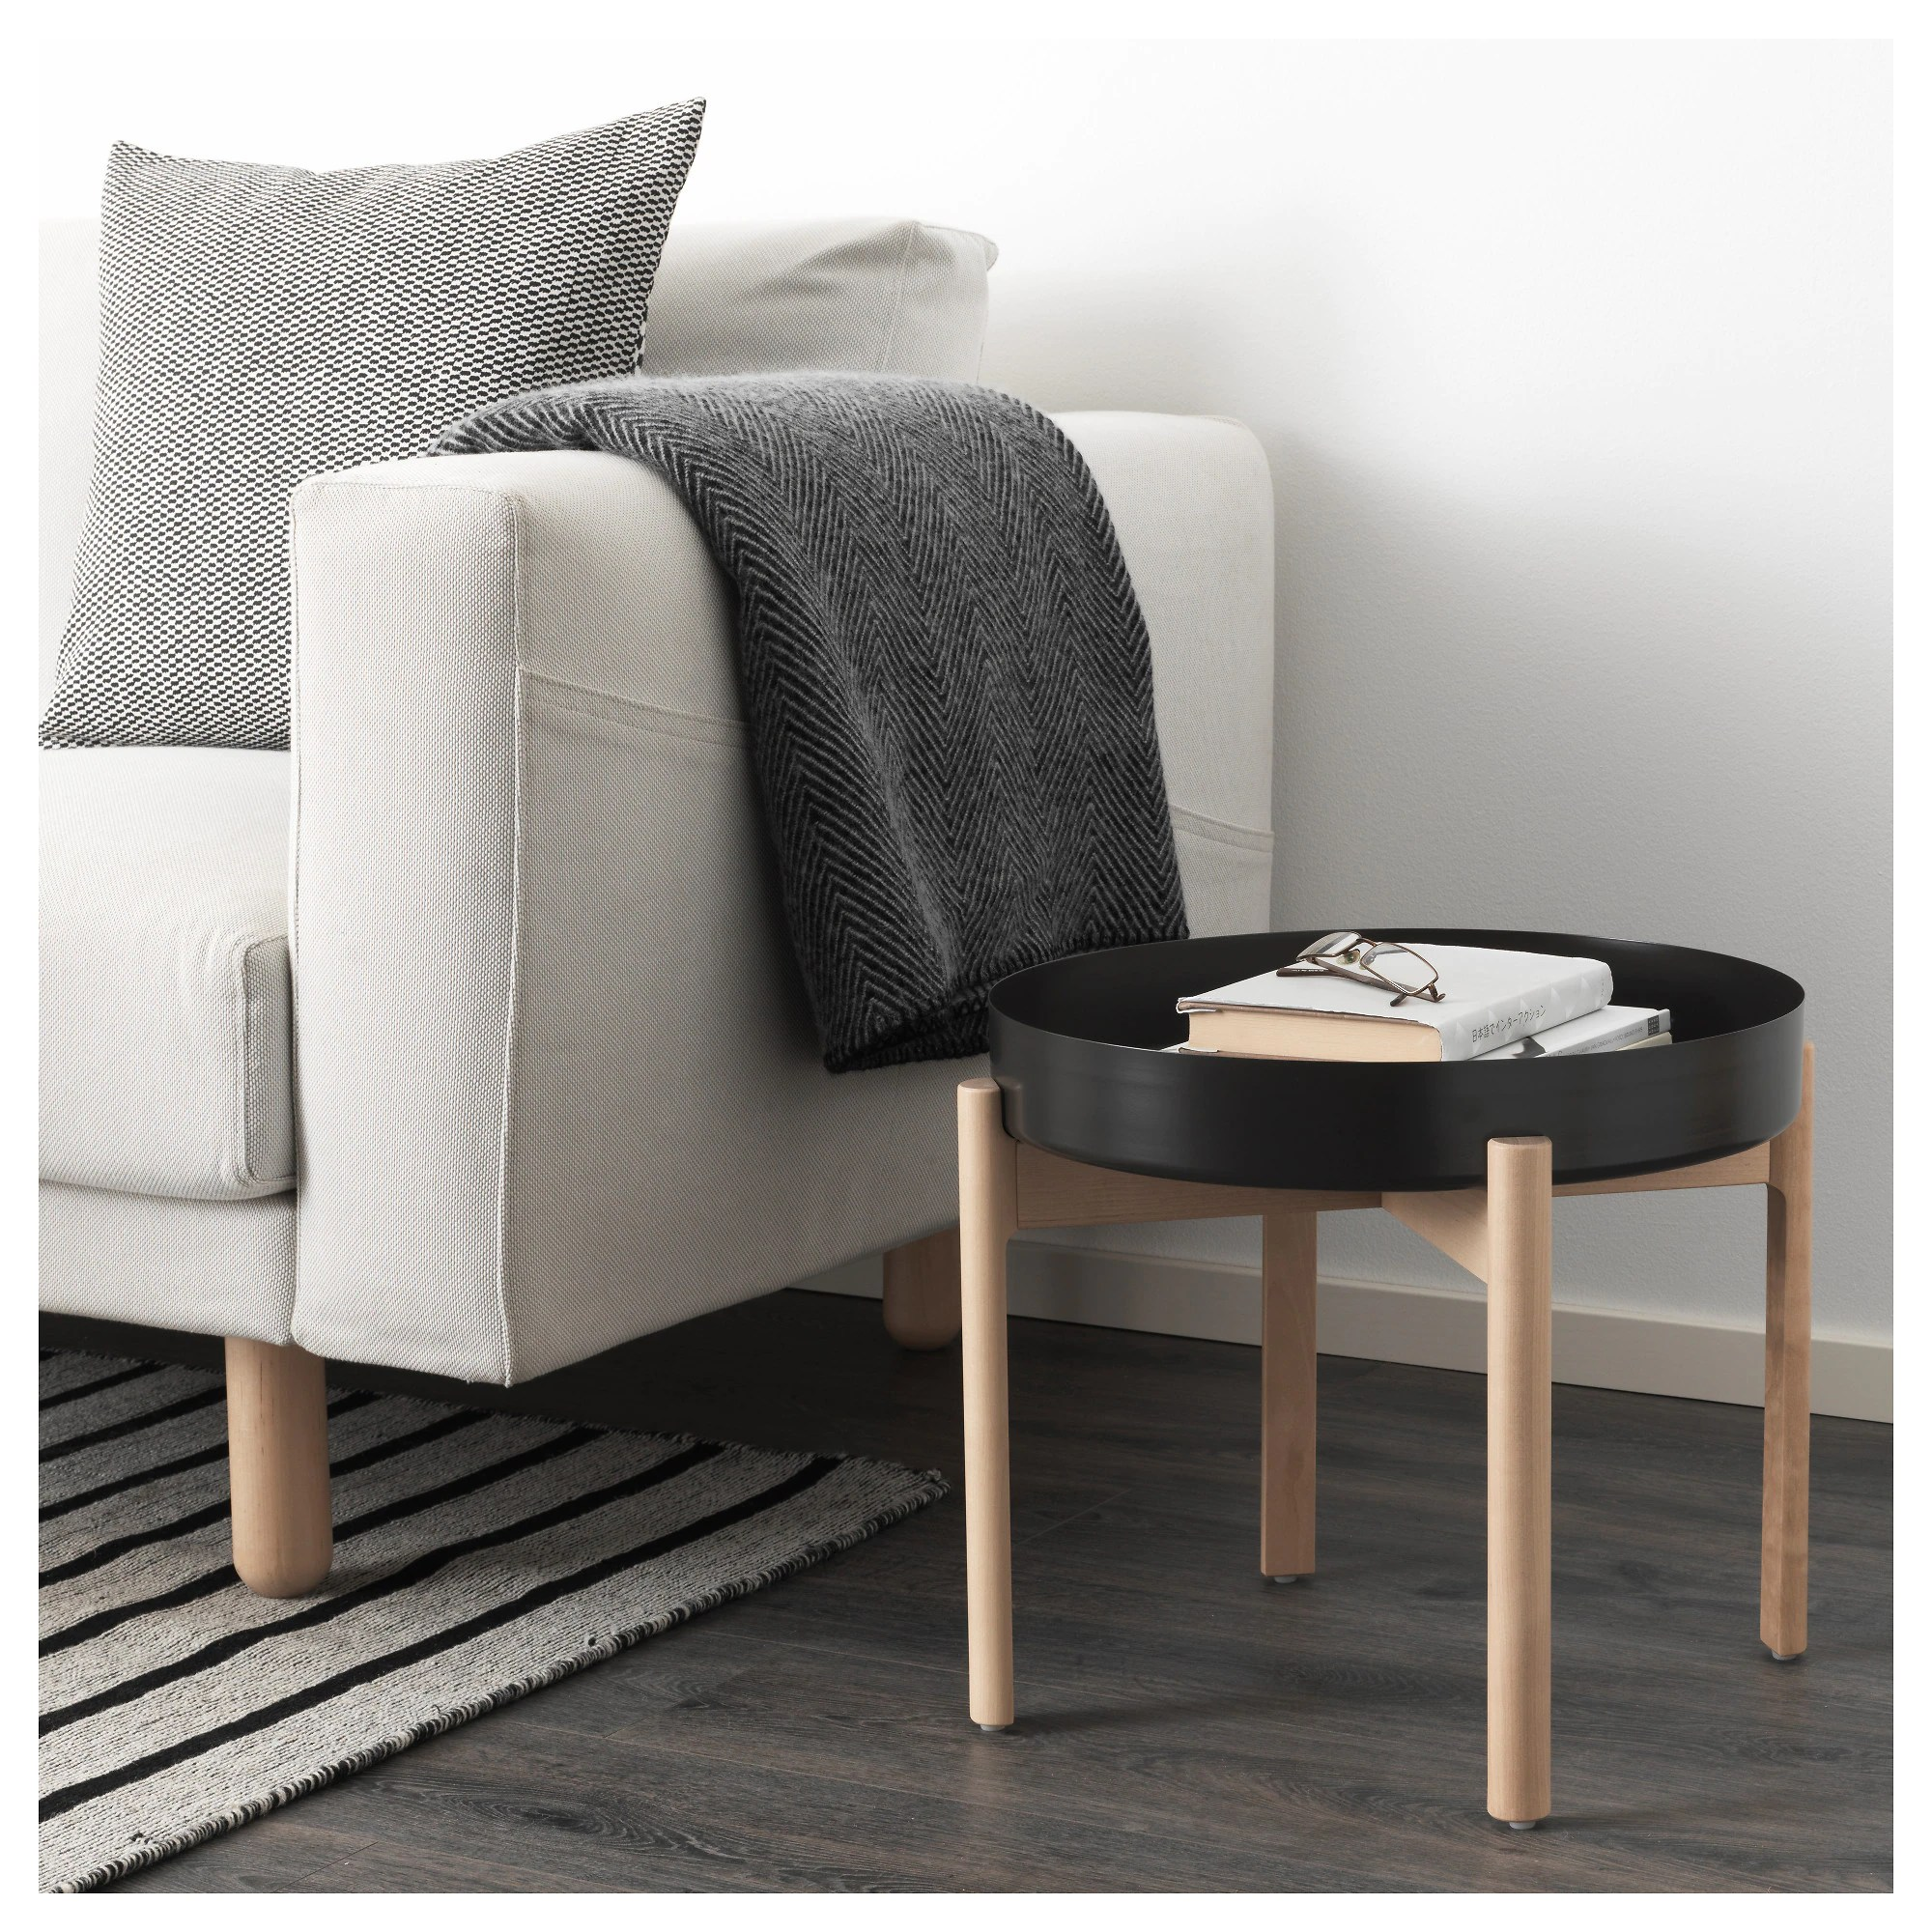 Catalogue Ikea Mulhouse Ikea Metalltisch